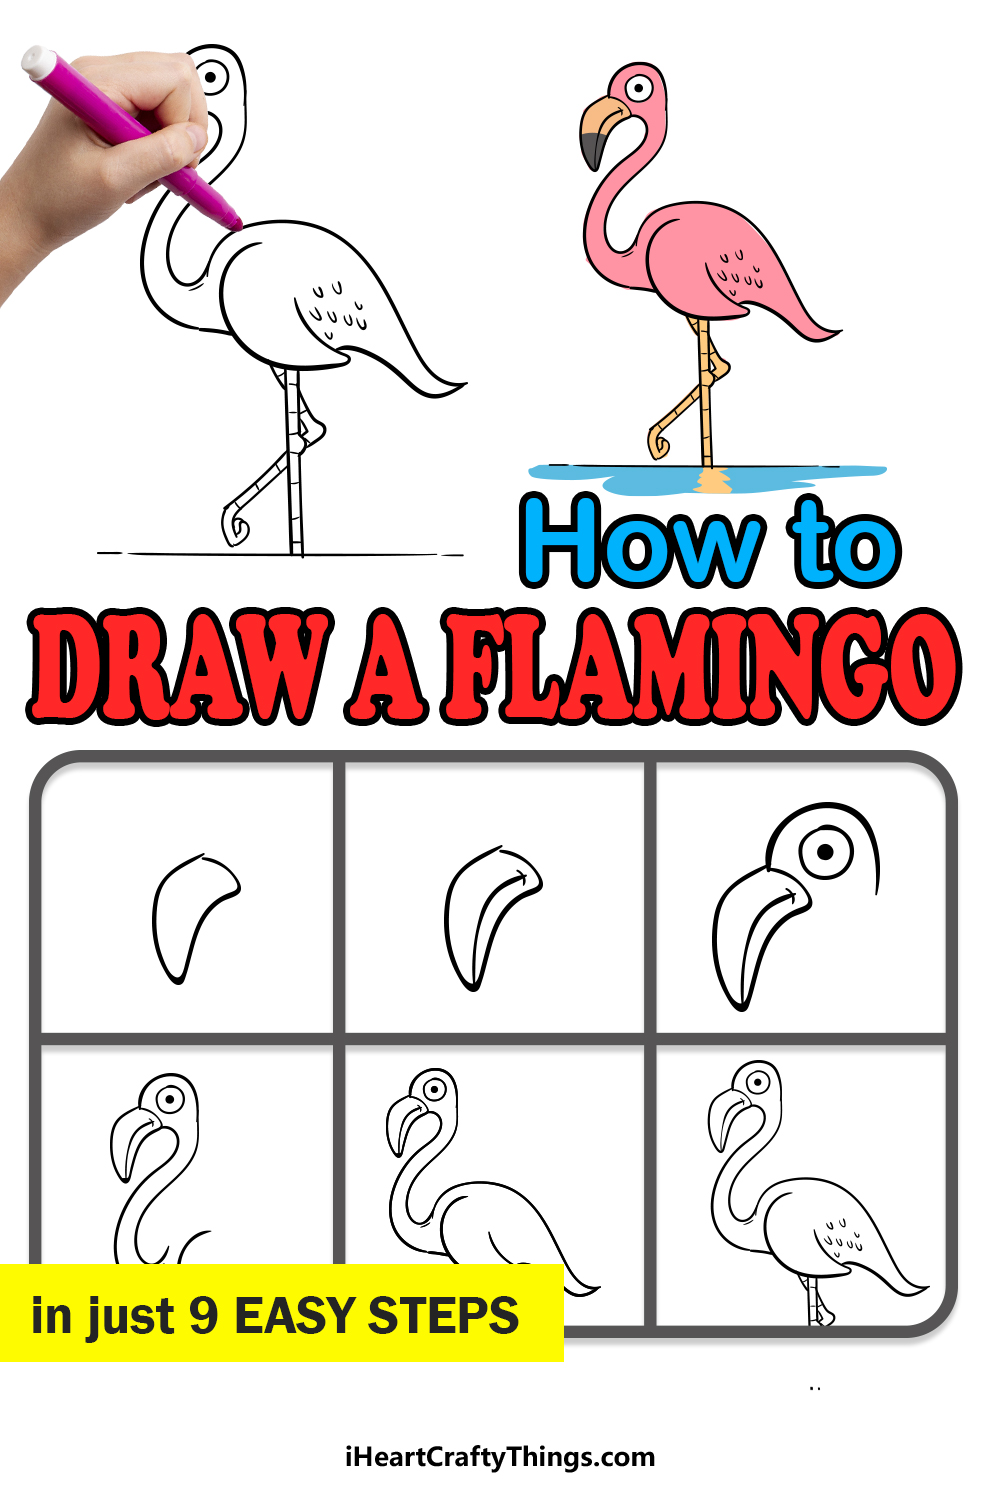 how to draw a flamingo in 9 easy steps